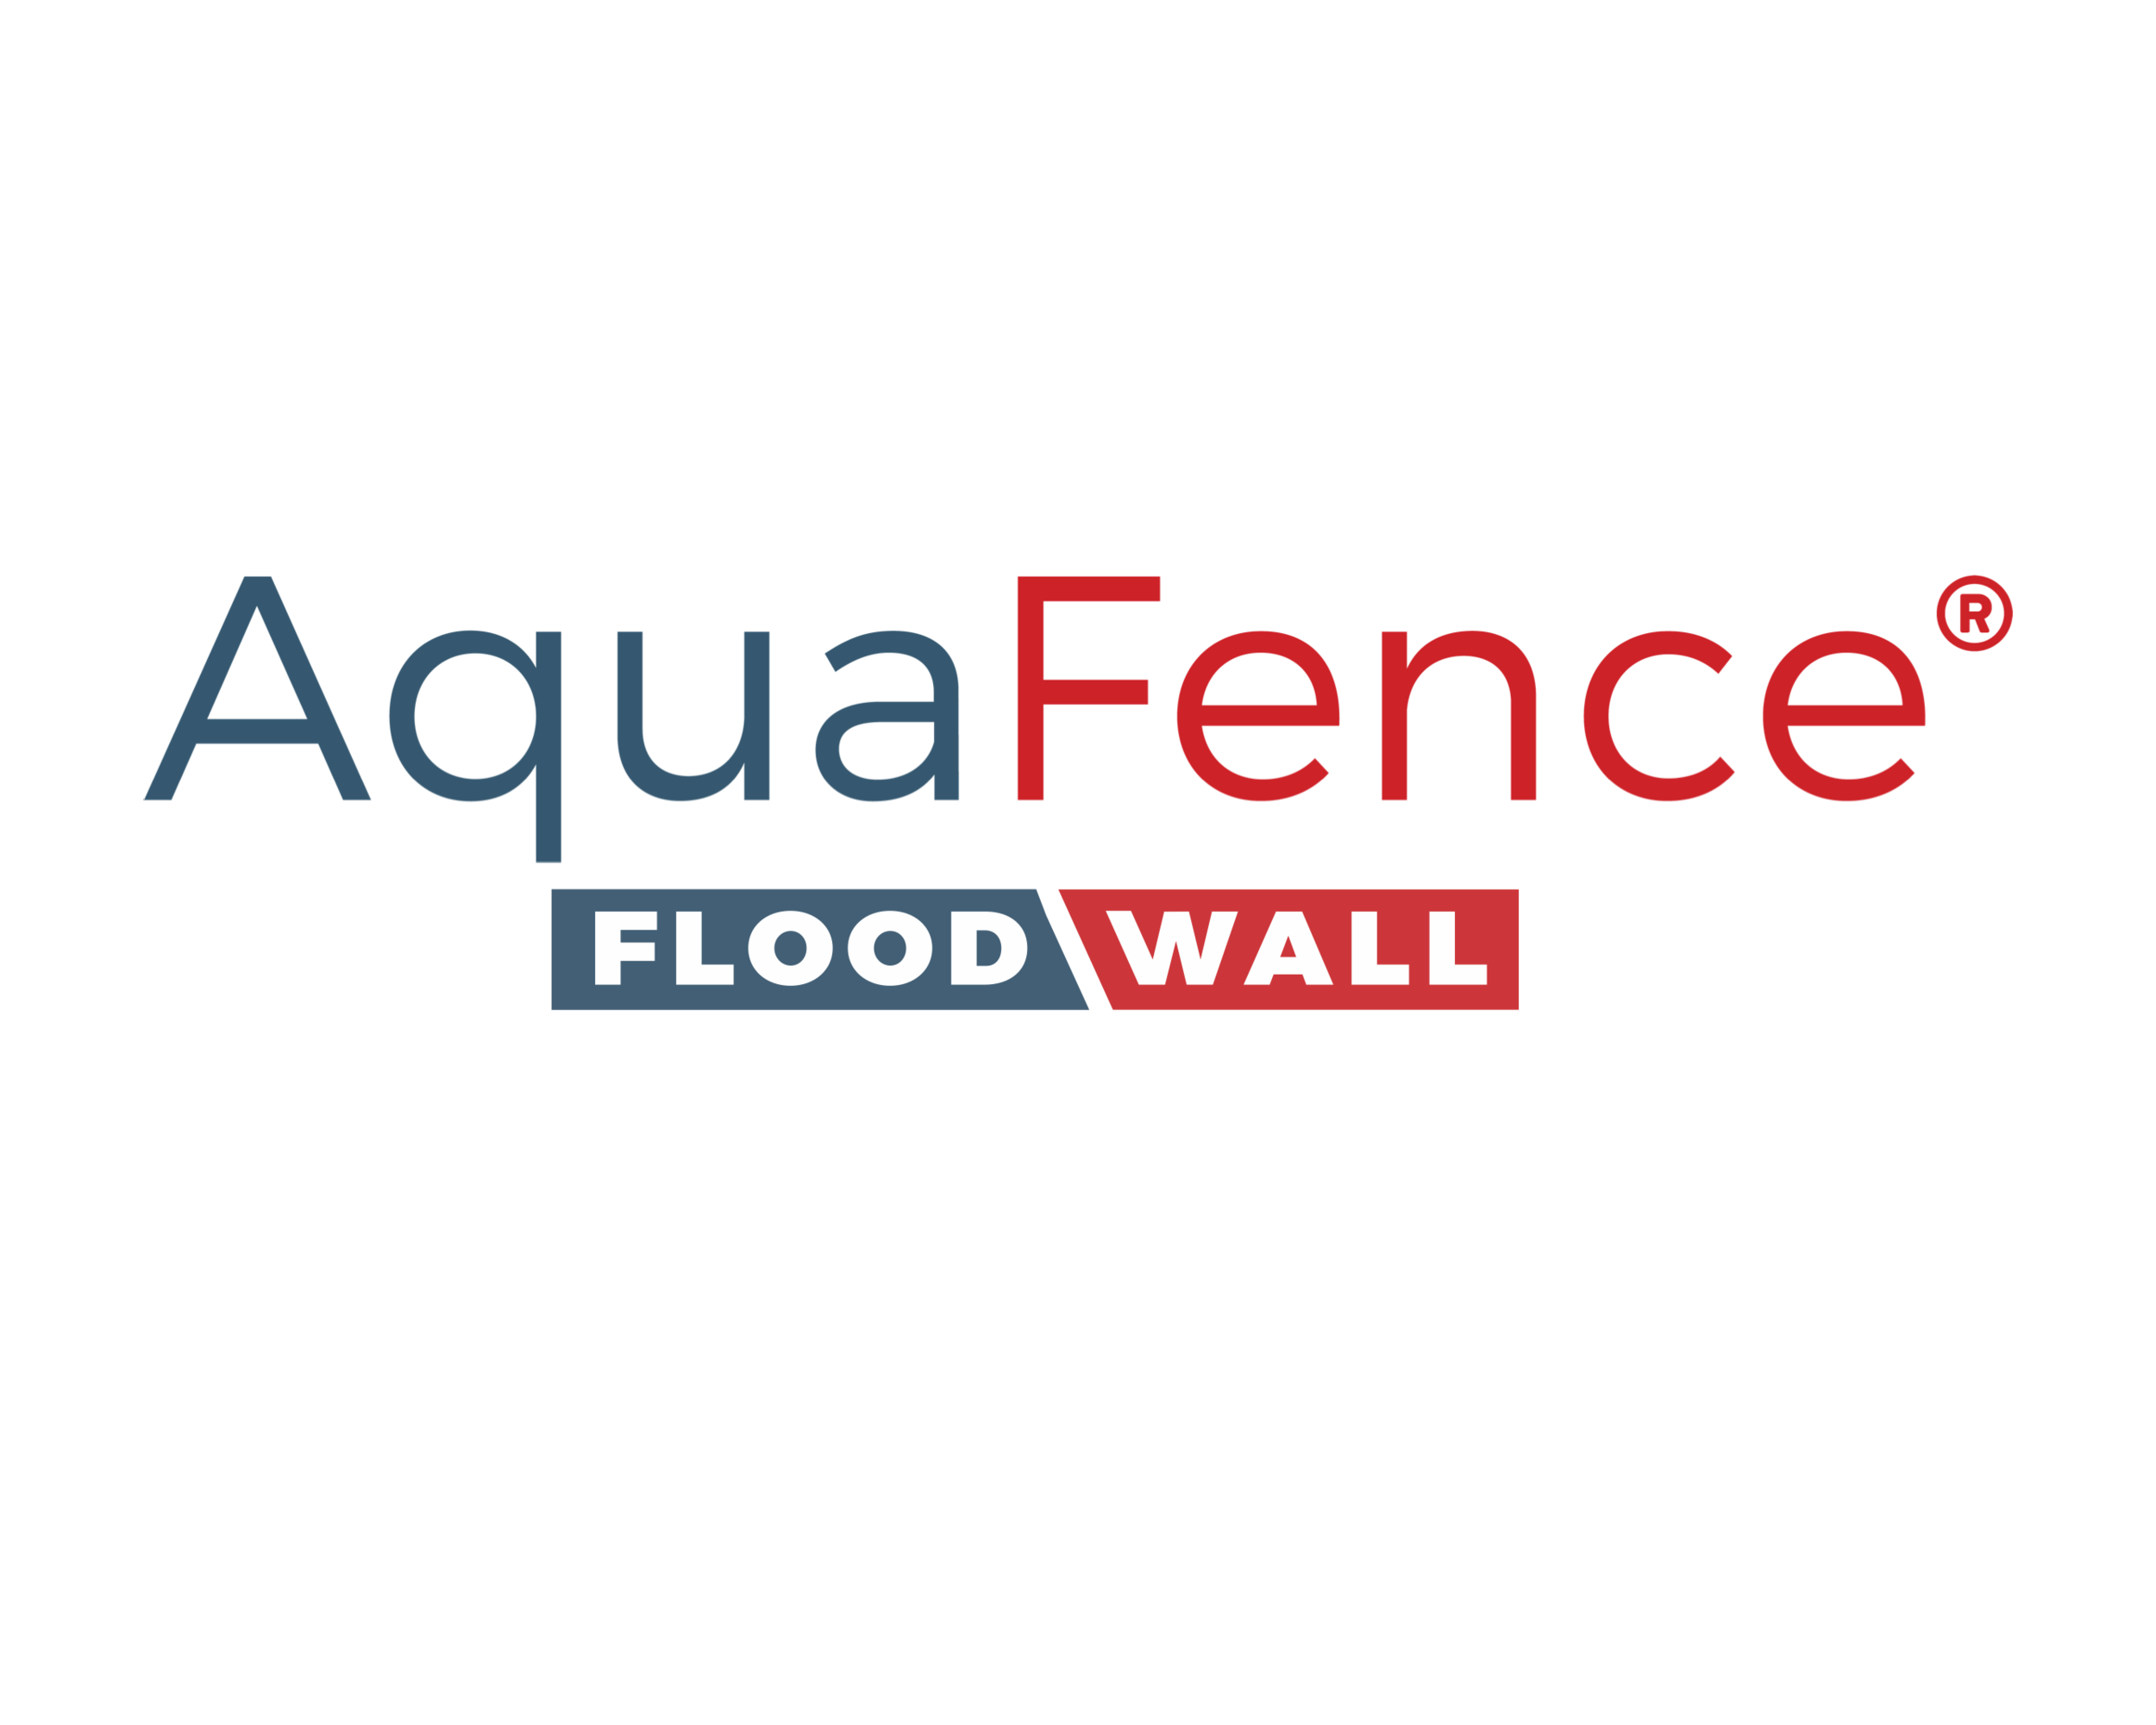 AquaFence FloodWall new2-kopi.png